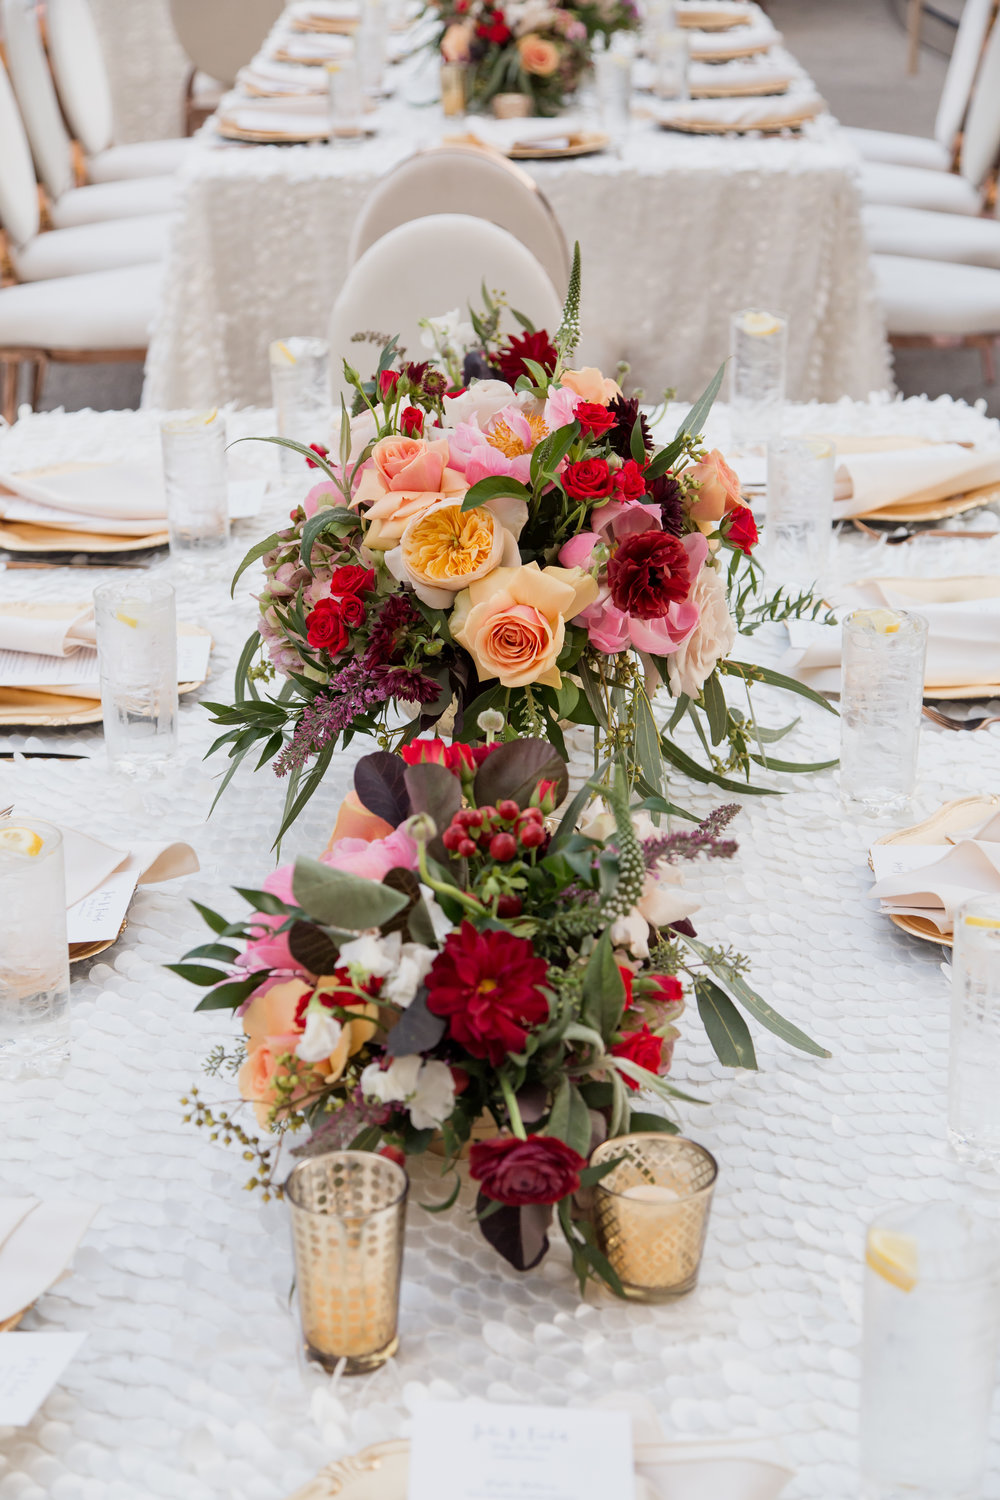 Jewel toned wedding centerpieces with gold votives on white flutter linen. Destination Wedding Planner  Andrea Eppolito  · Photos by  Adam Frazier Photography  · Floral and Decor by  Destinations by Design  ·  Lighting by  LED Unplugged  · Venue  · Invitations  Ceci New York   ·  Menus by  Alligator Soup